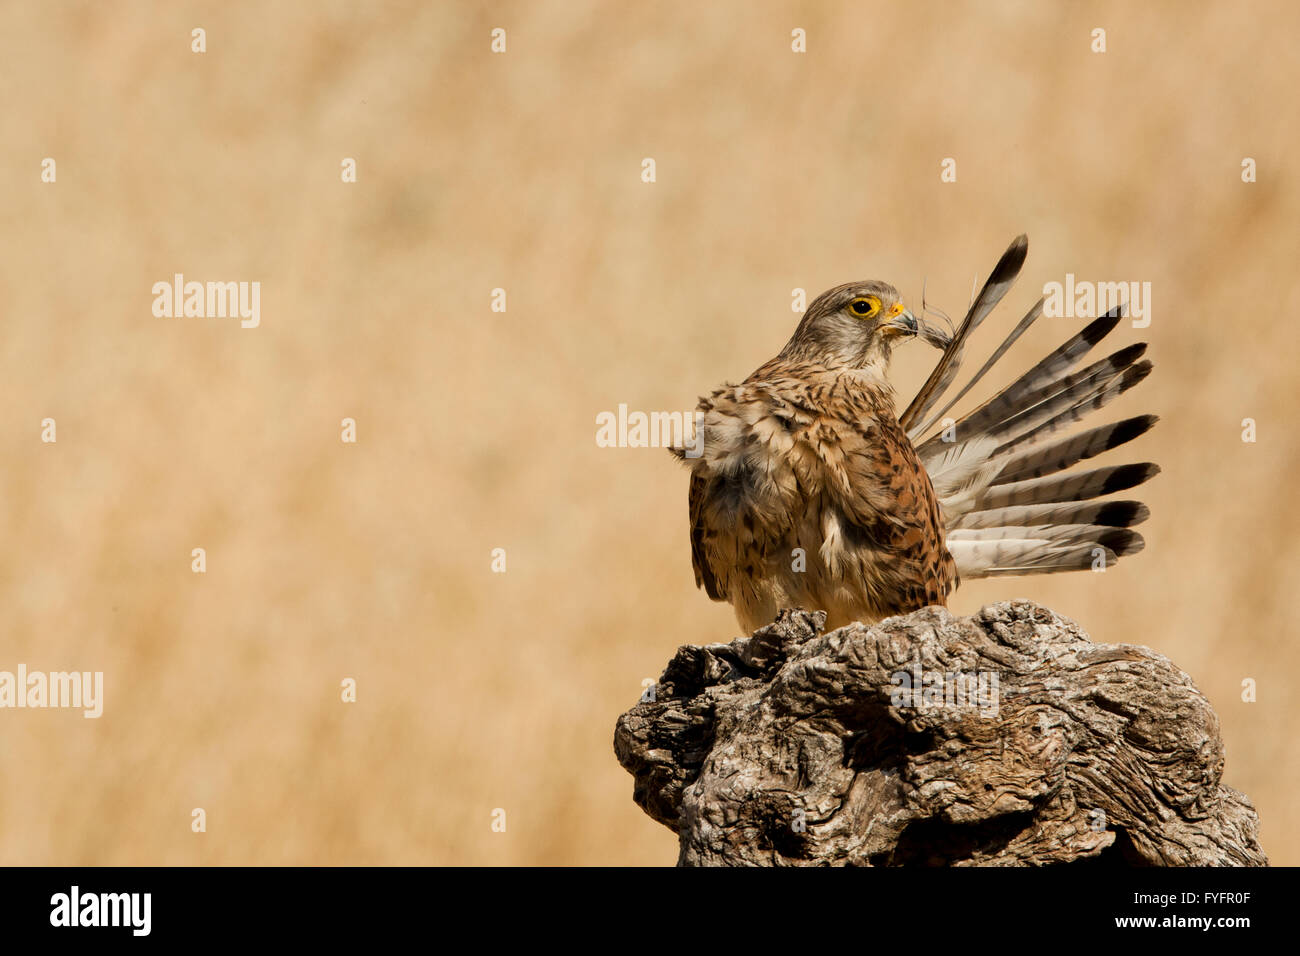 Common kestrel (Falco tinnunculus) female cleans its feathers. This bird of prey is a member of the falcon (Falconidae) - Stock Image